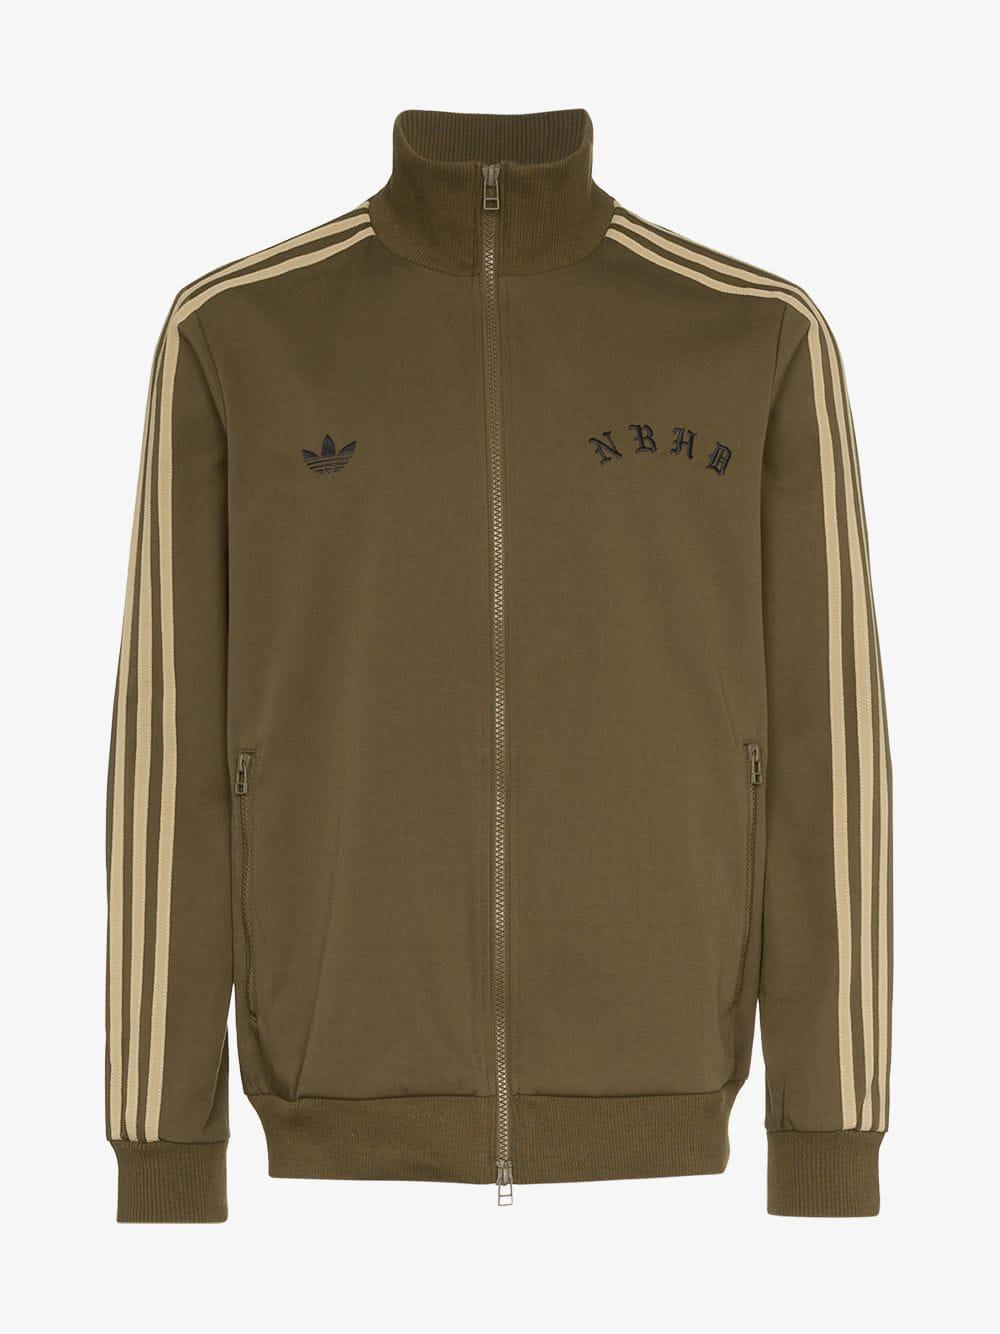 43c058ffa9b8 adidas X Neighborhood Logo Track Jacket in Green for Men - Lyst